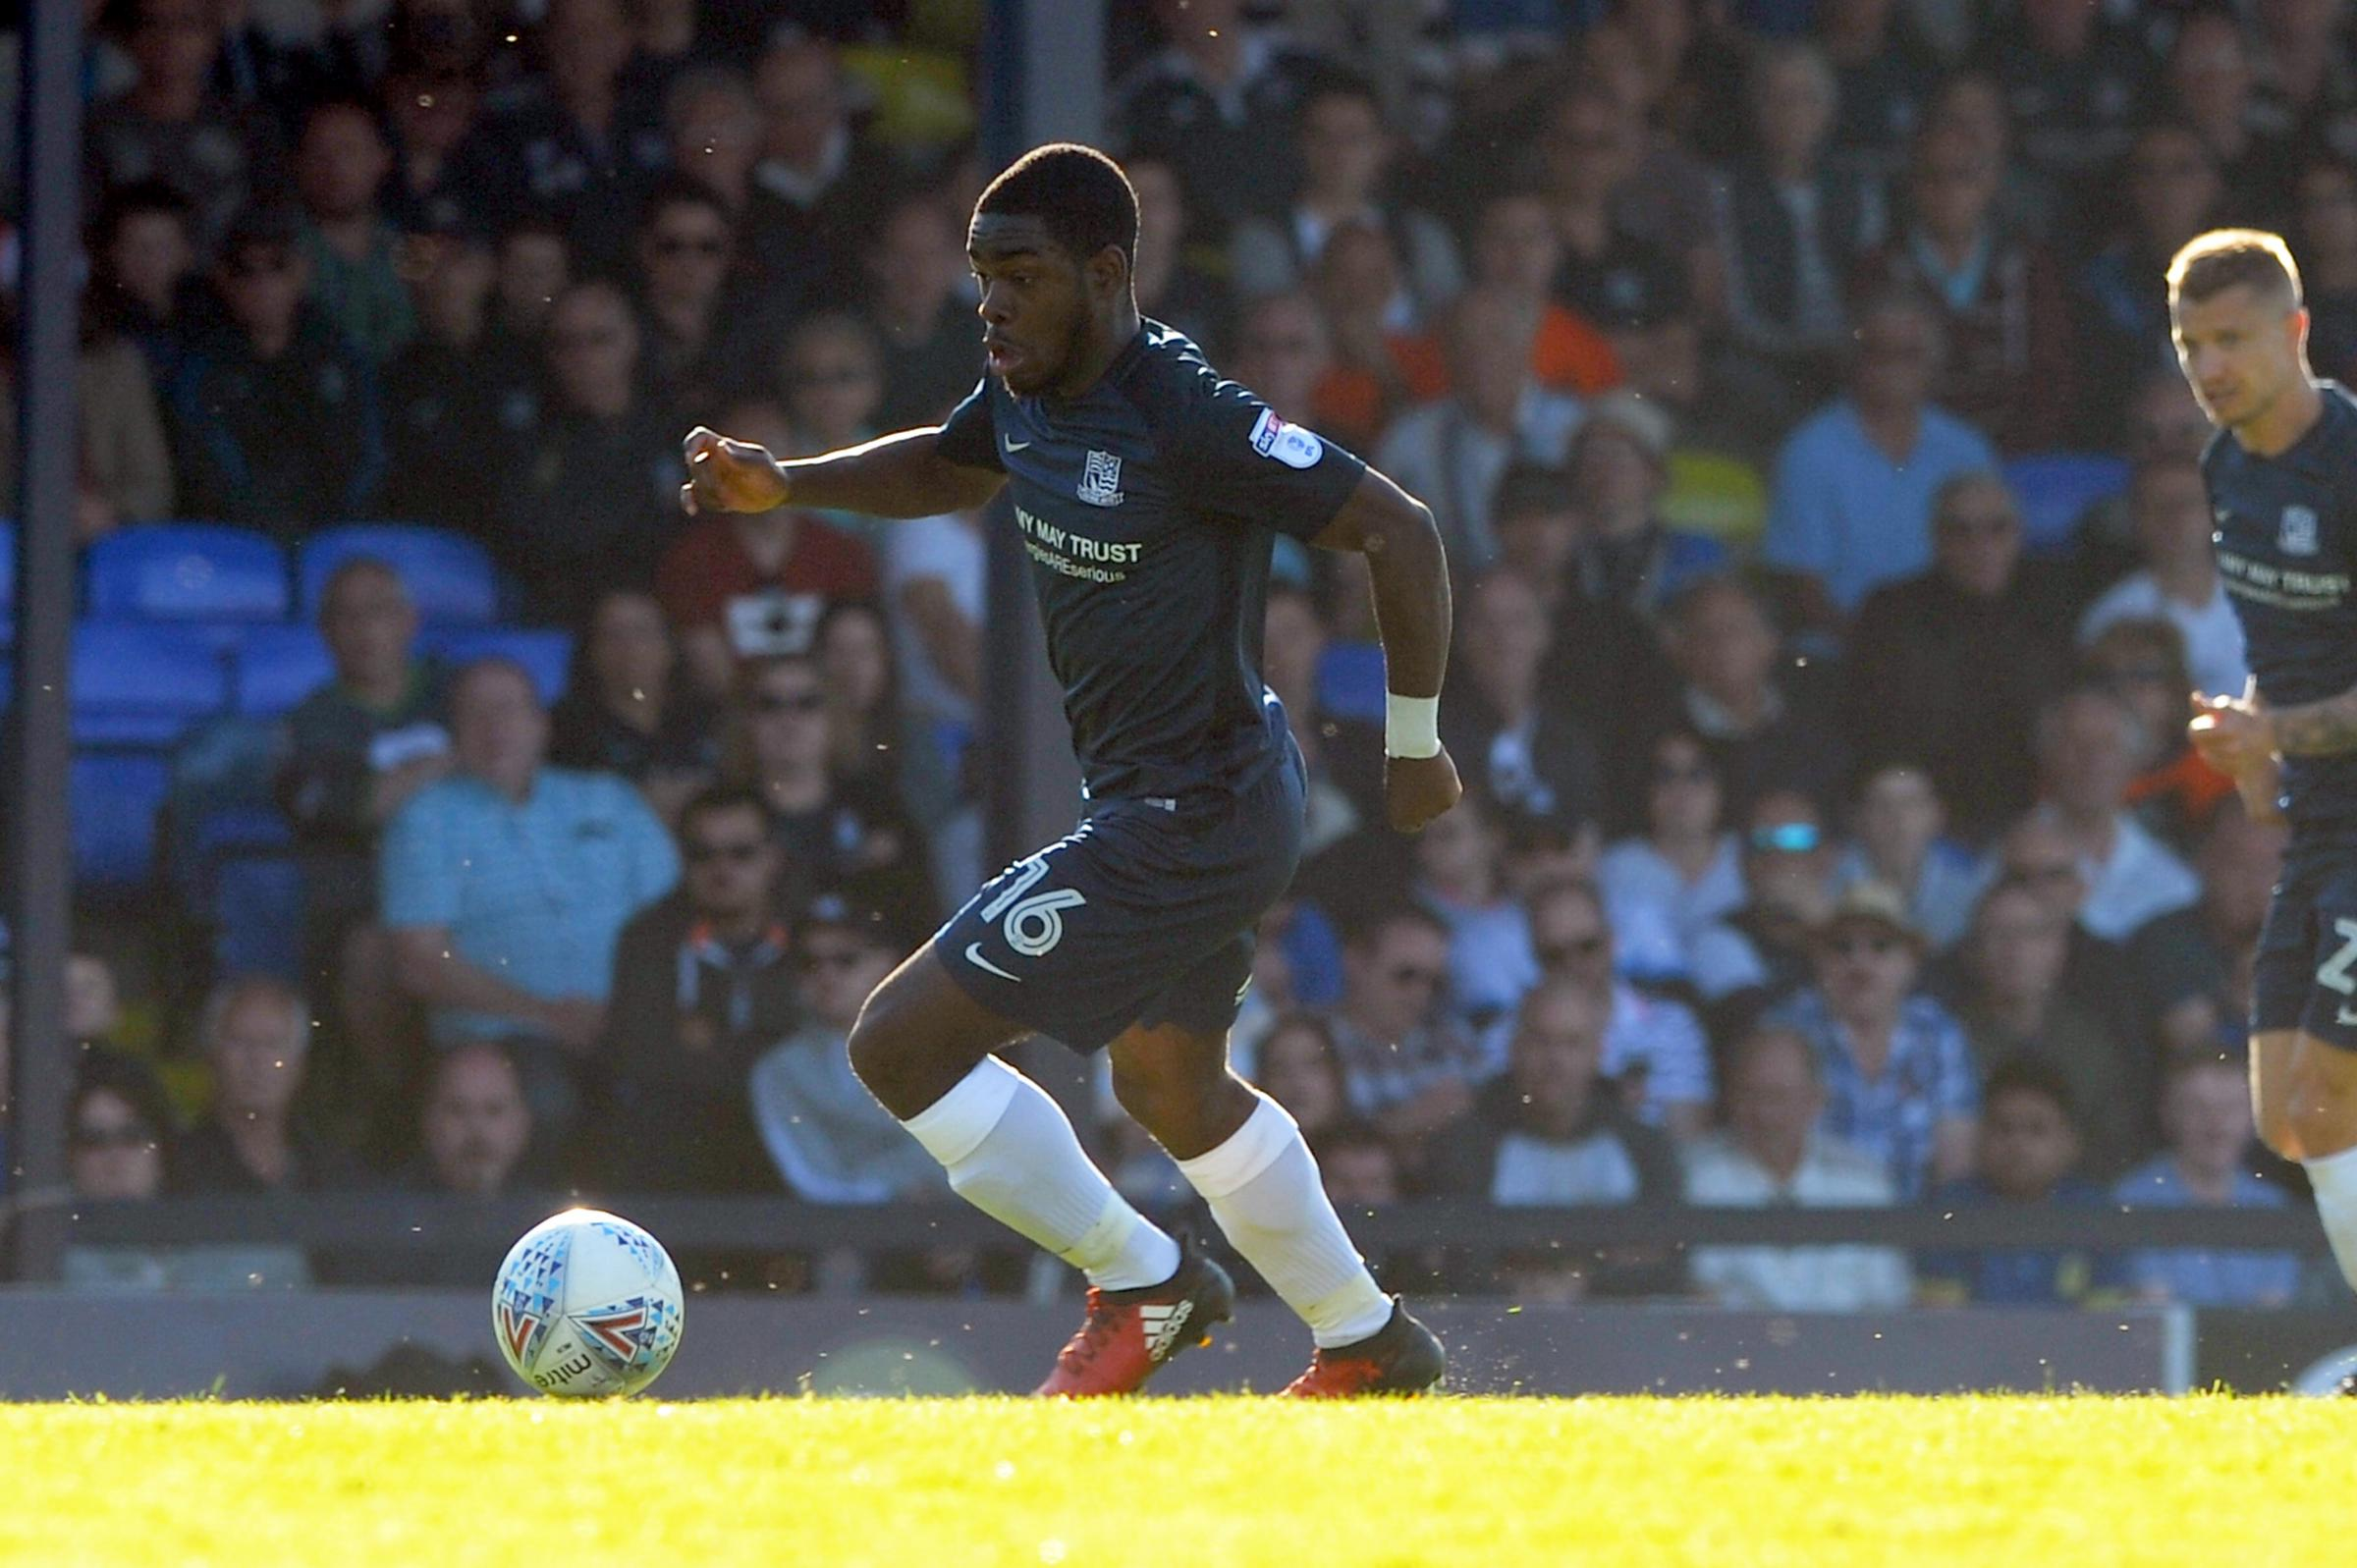 Back in full training - Southend United midfielder Dru Yearwood